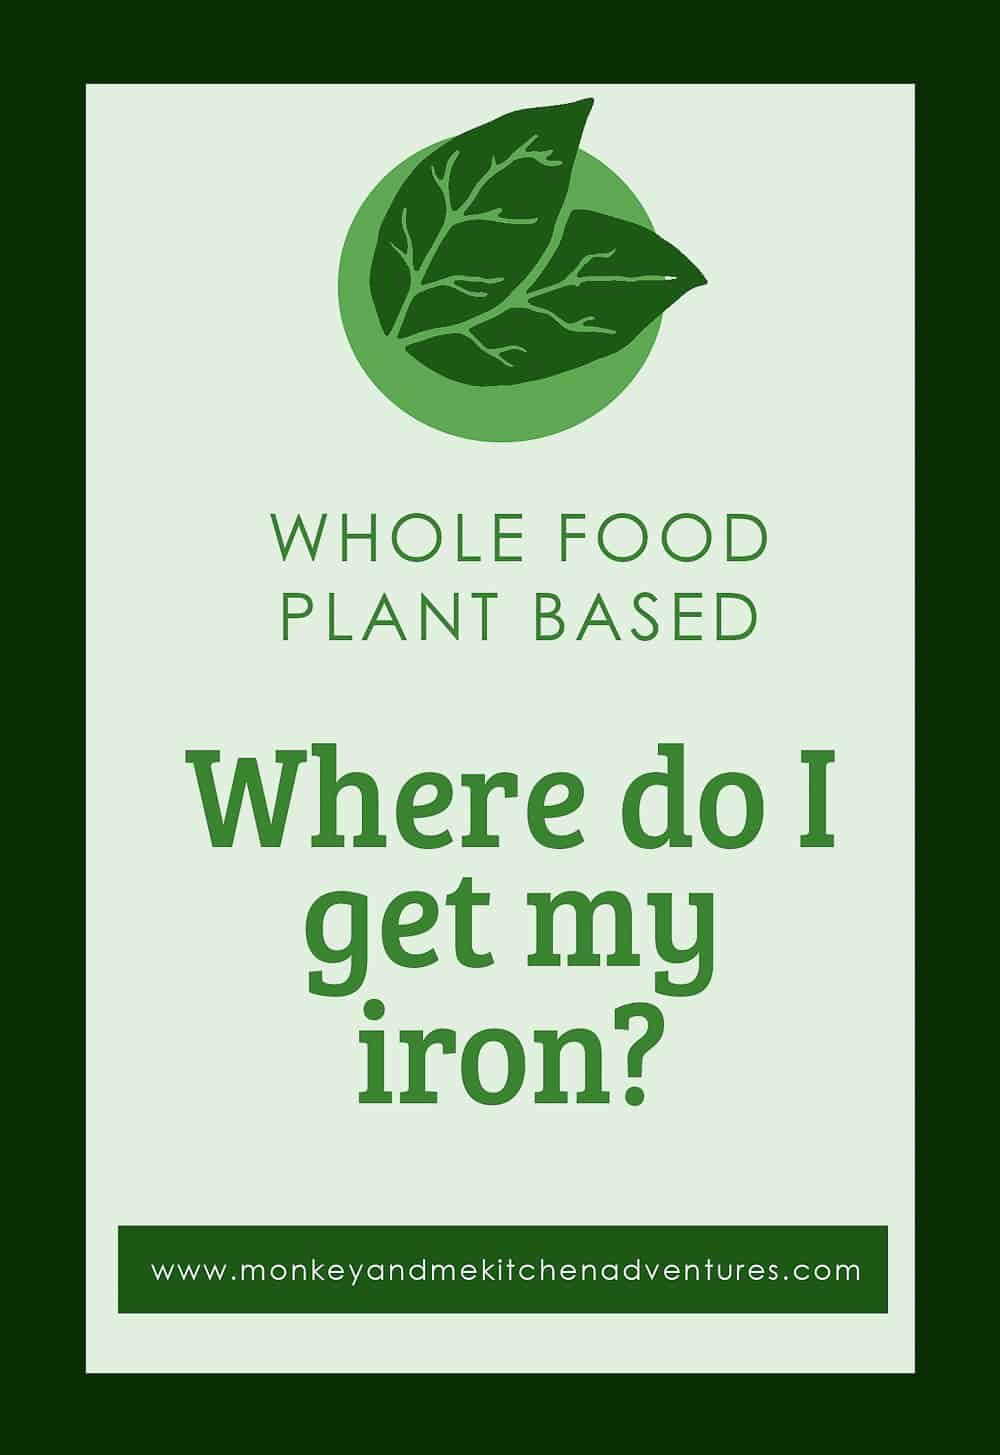 Iron, Where do I get my Iron, Whole food Plant Based, Resources